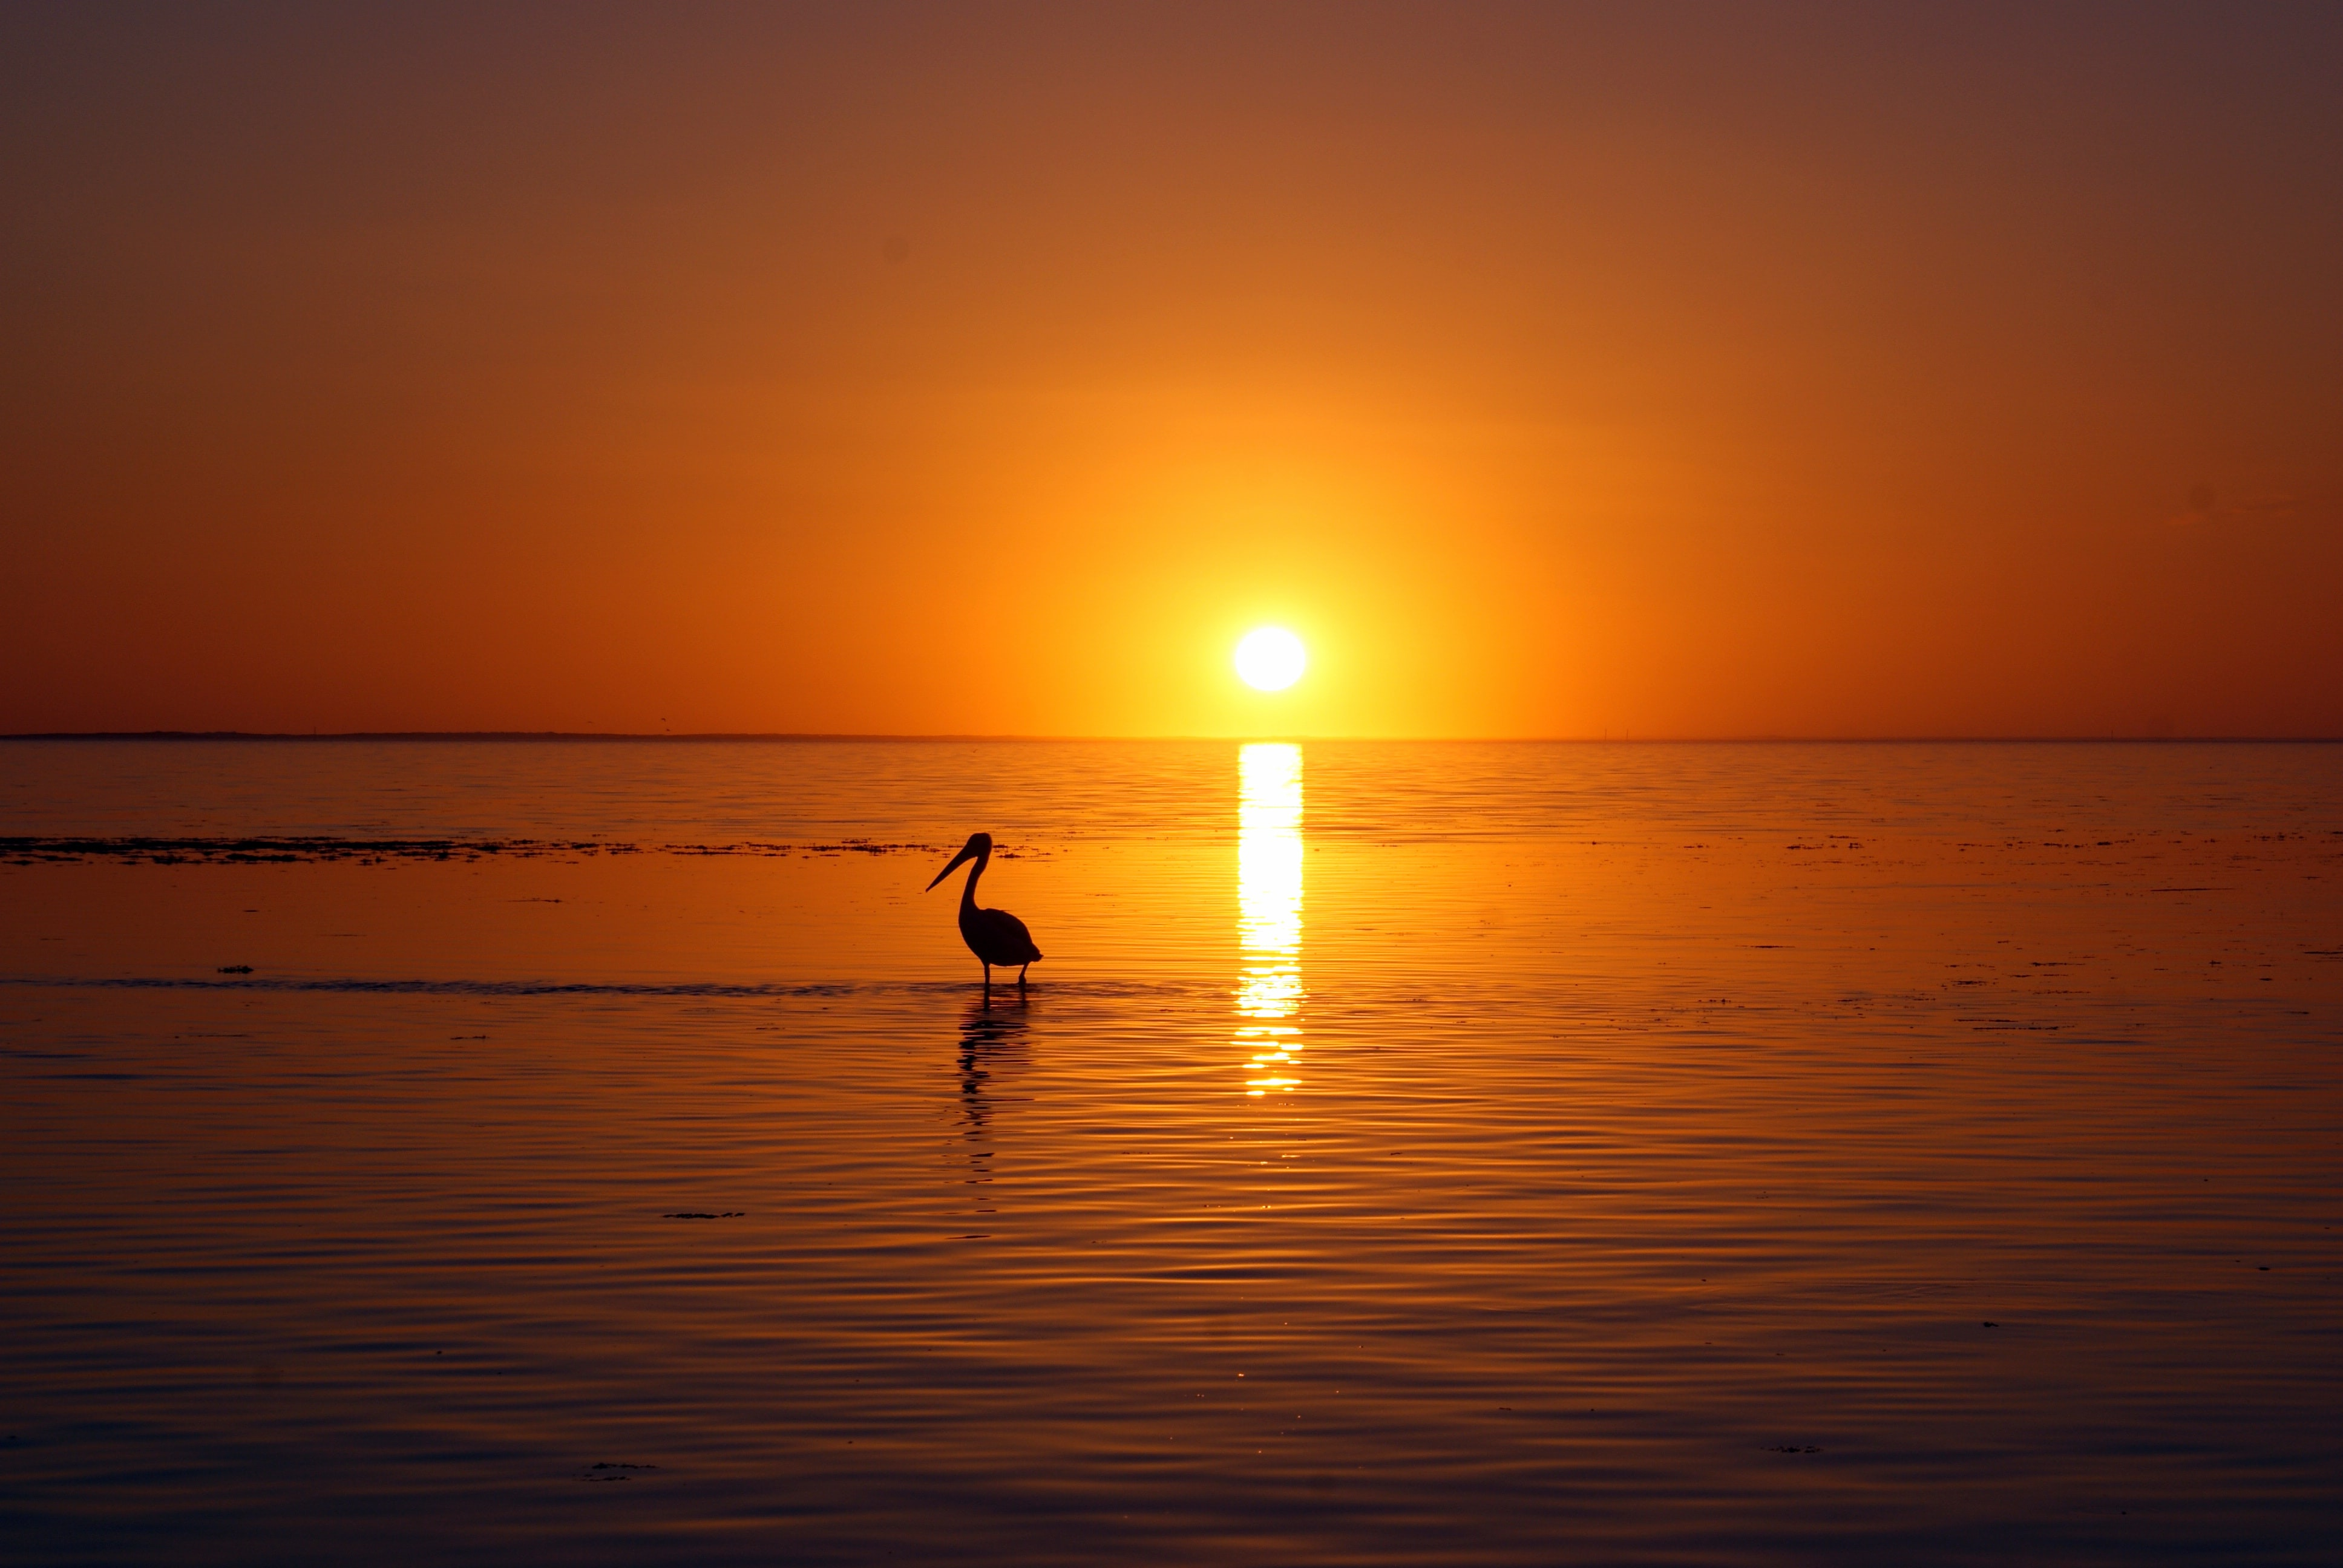 silhouette of bird on body of water at golden hour